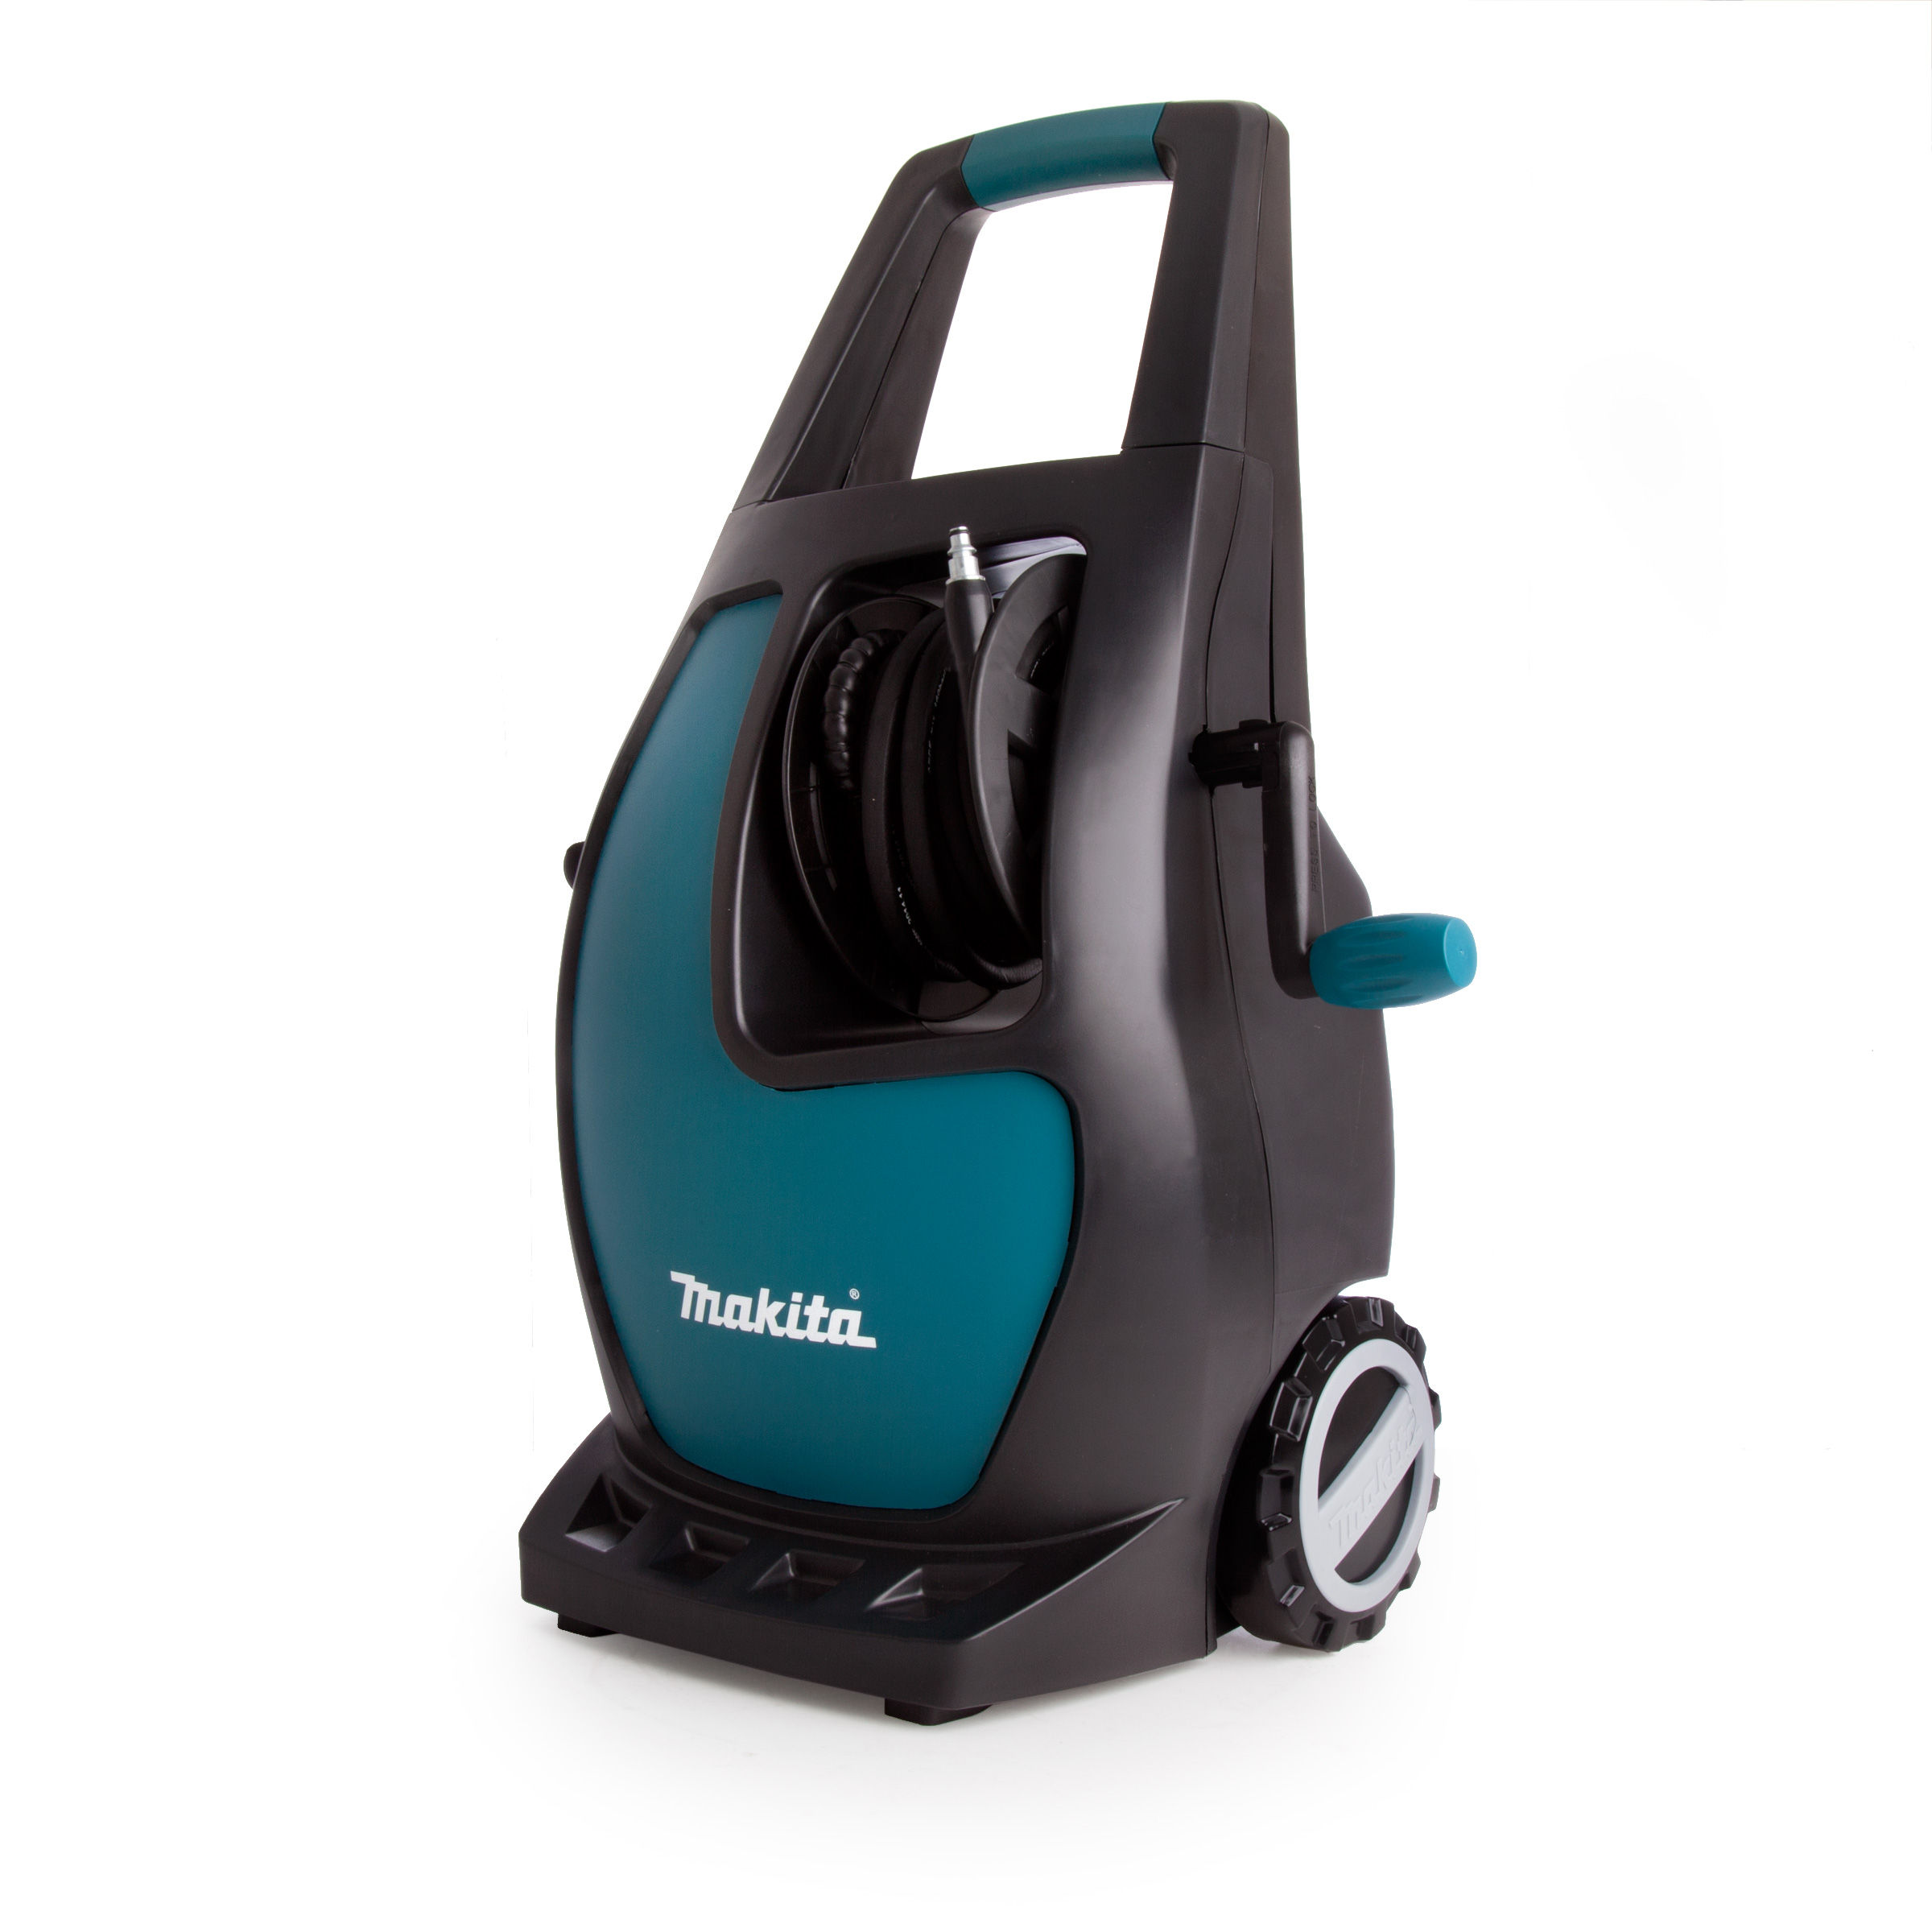 Vaak Toolstop Makita HW111 Pressure Washer 110 Bar 240V XH51